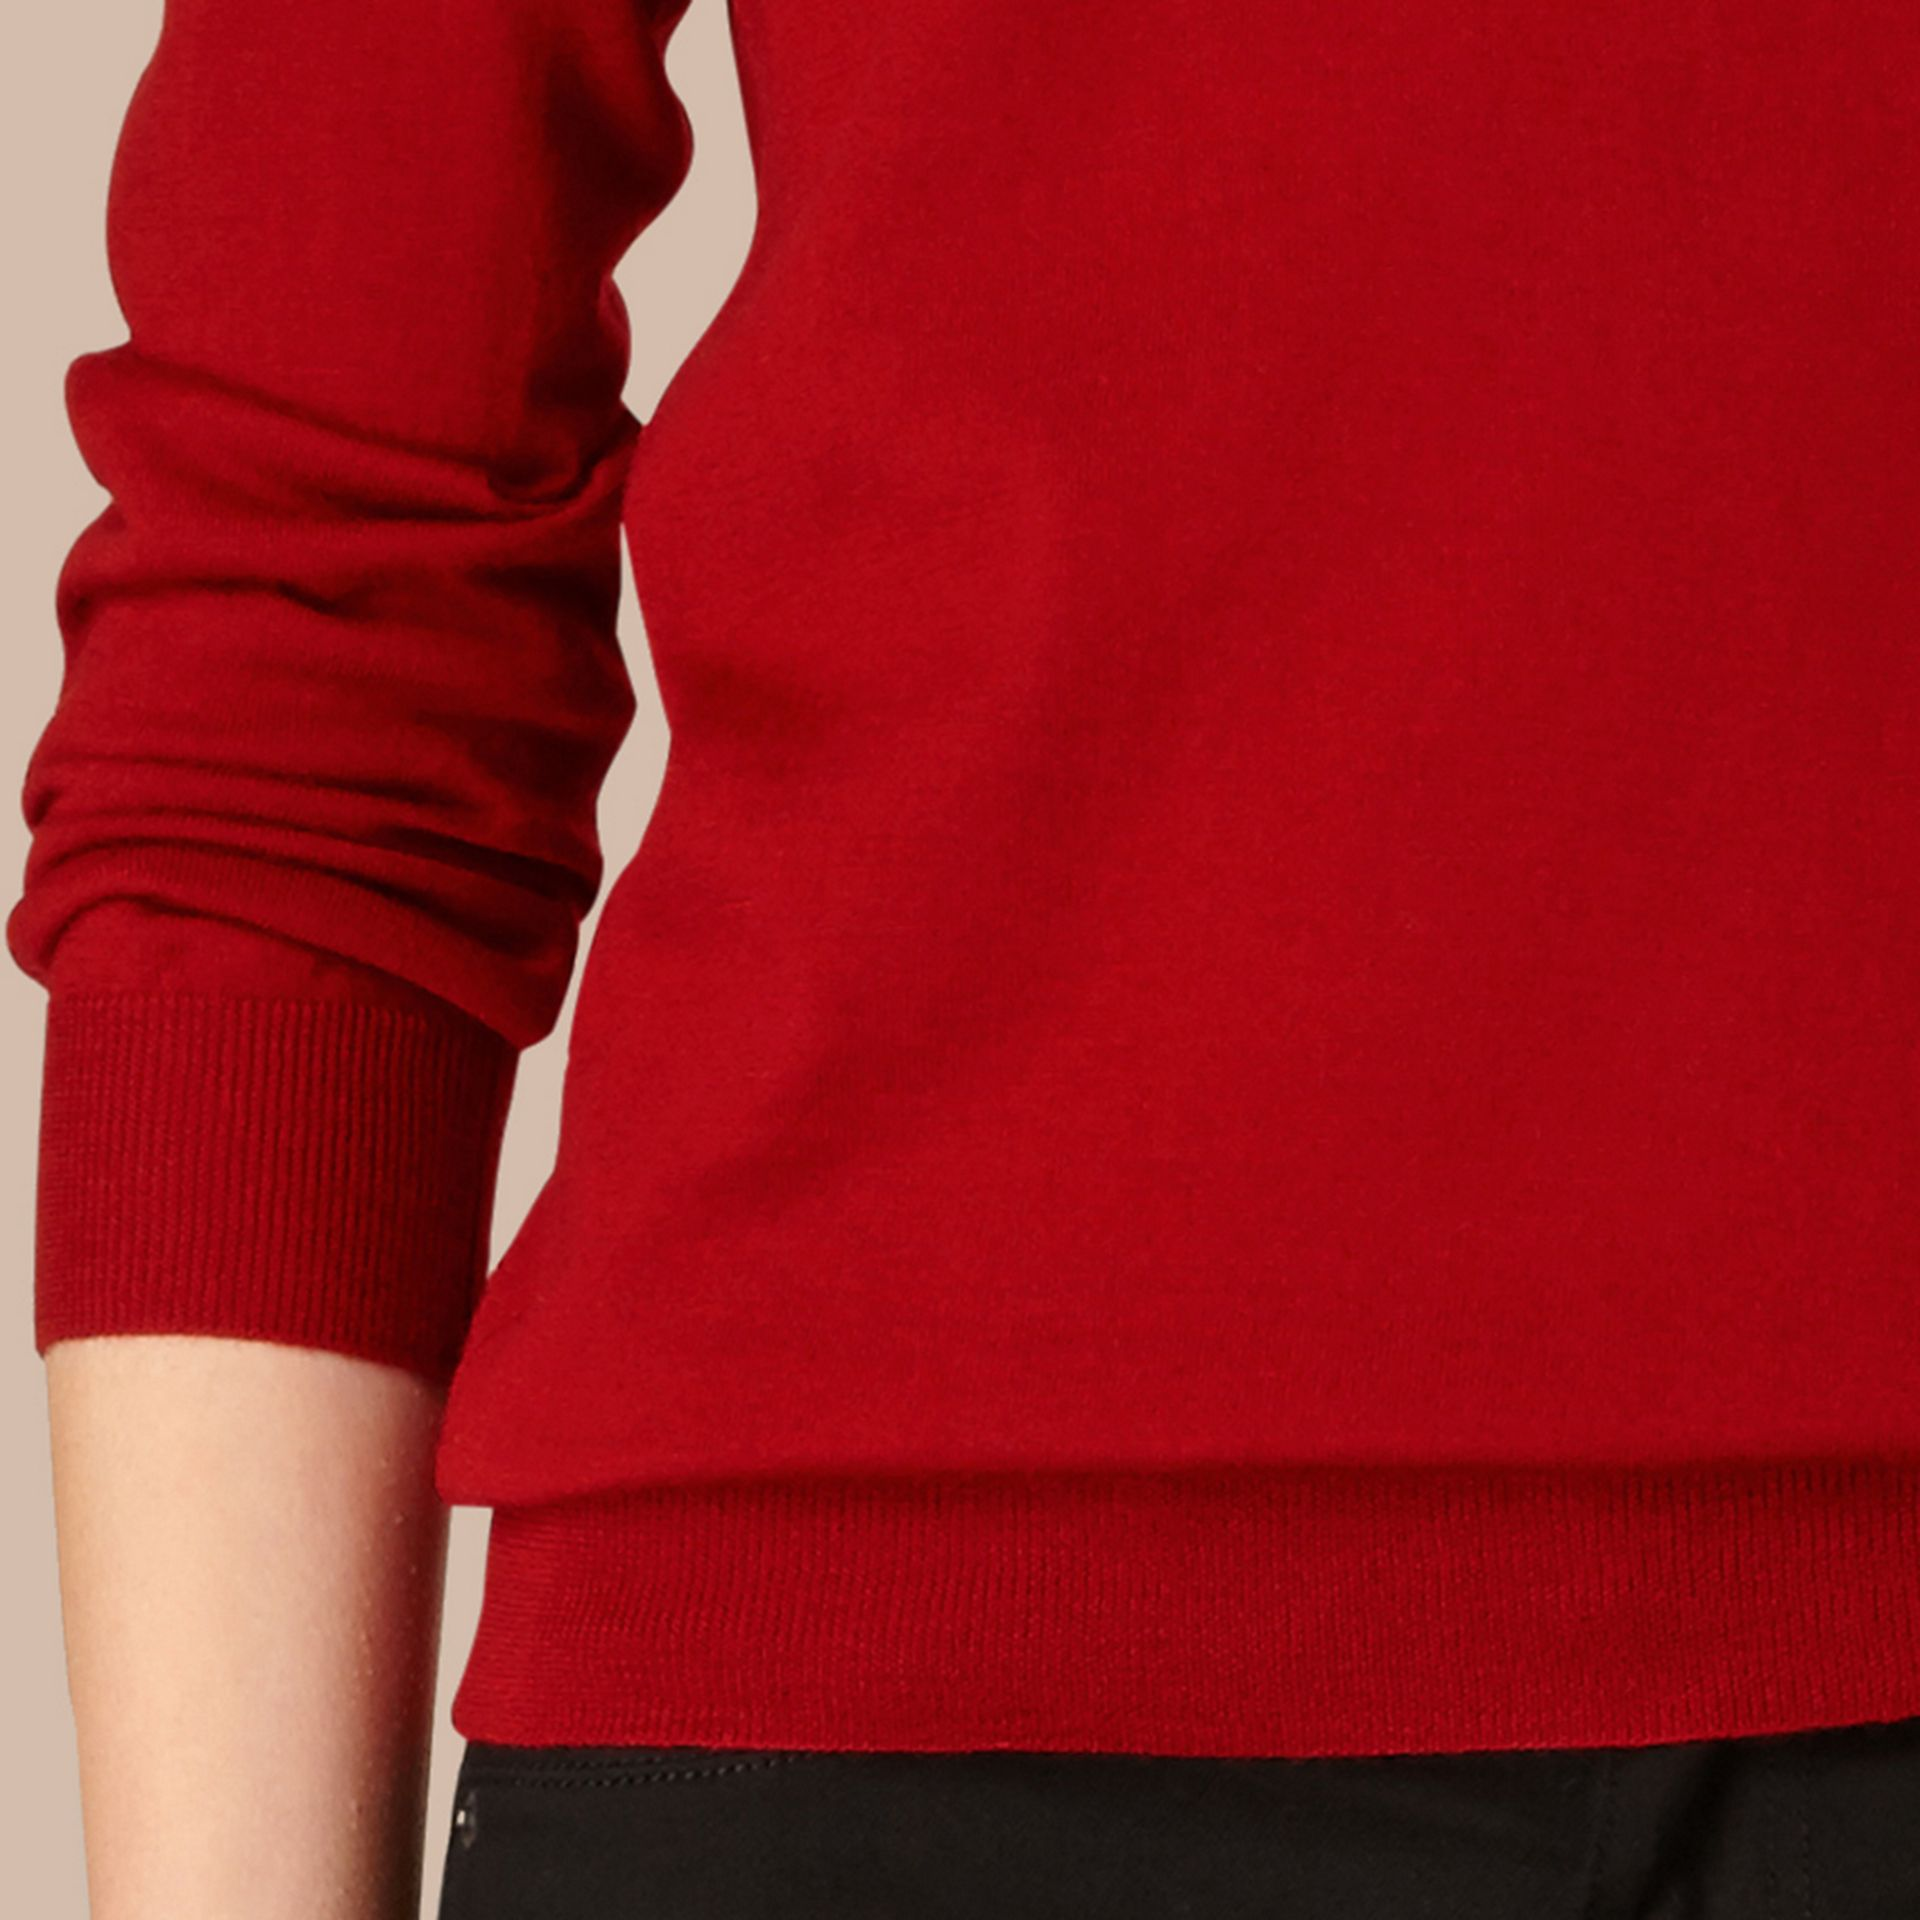 Check Detail Merino Wool Crew Neck Sweater in Parade Red - Women | Burberry Canada - gallery image 1